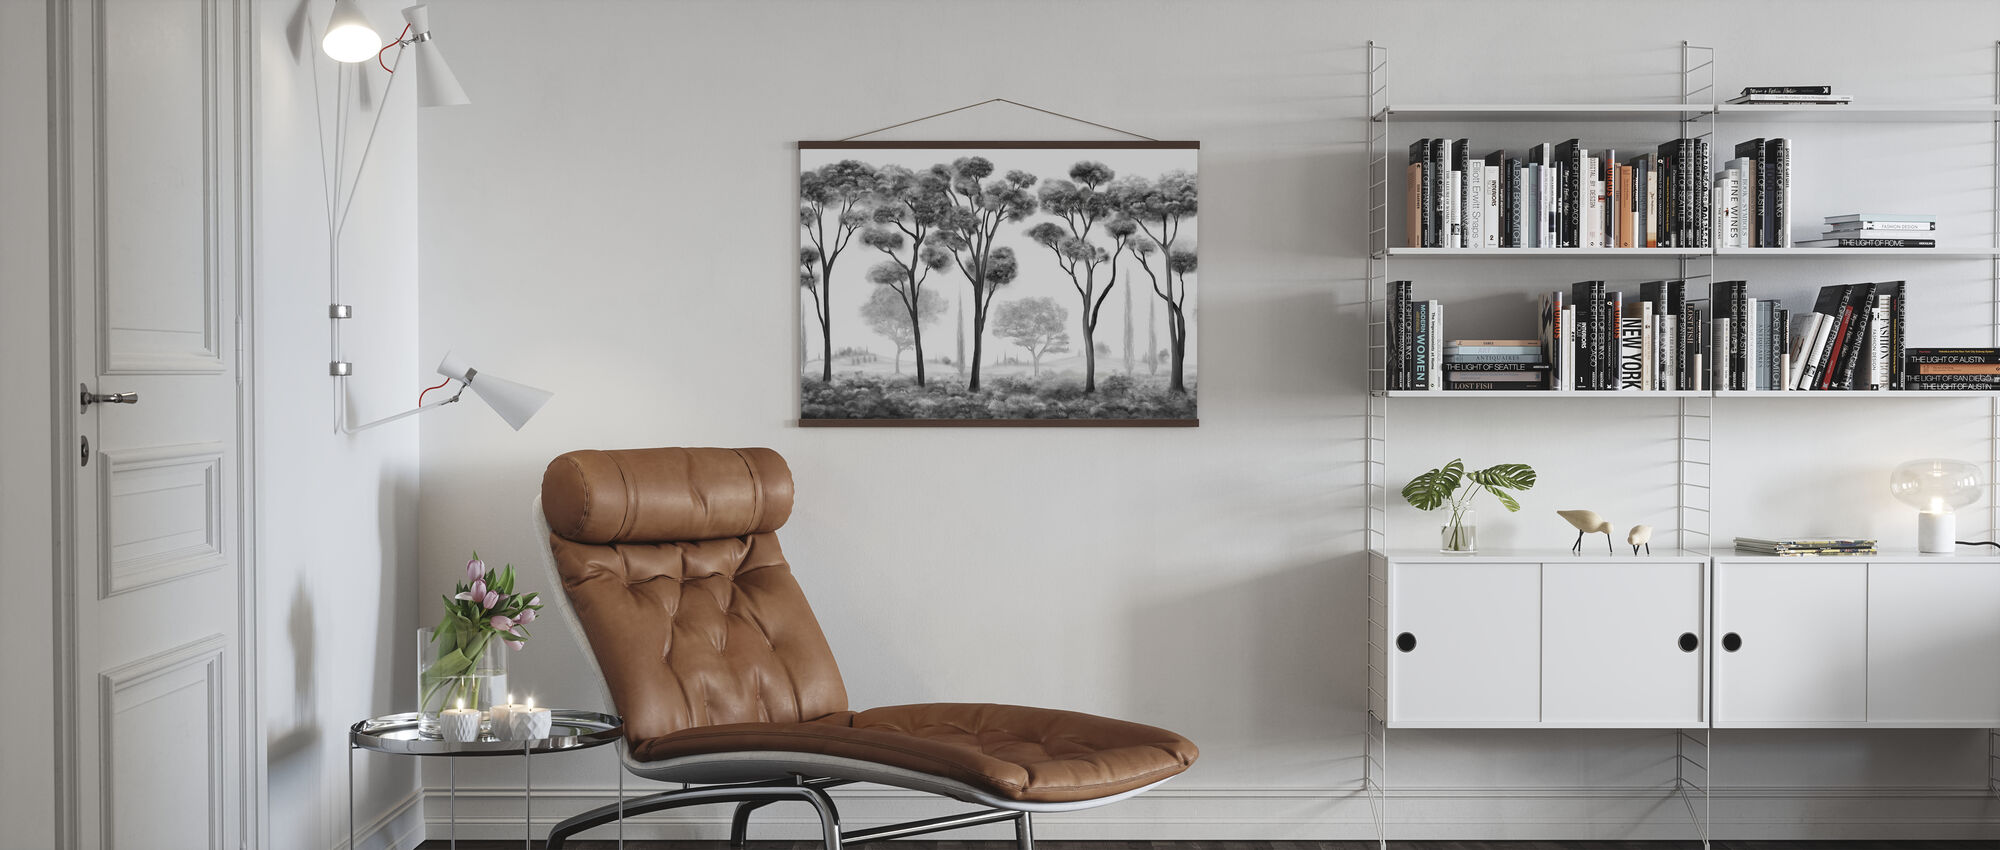 Shafts Chiaroscuro - Poster - Living Room